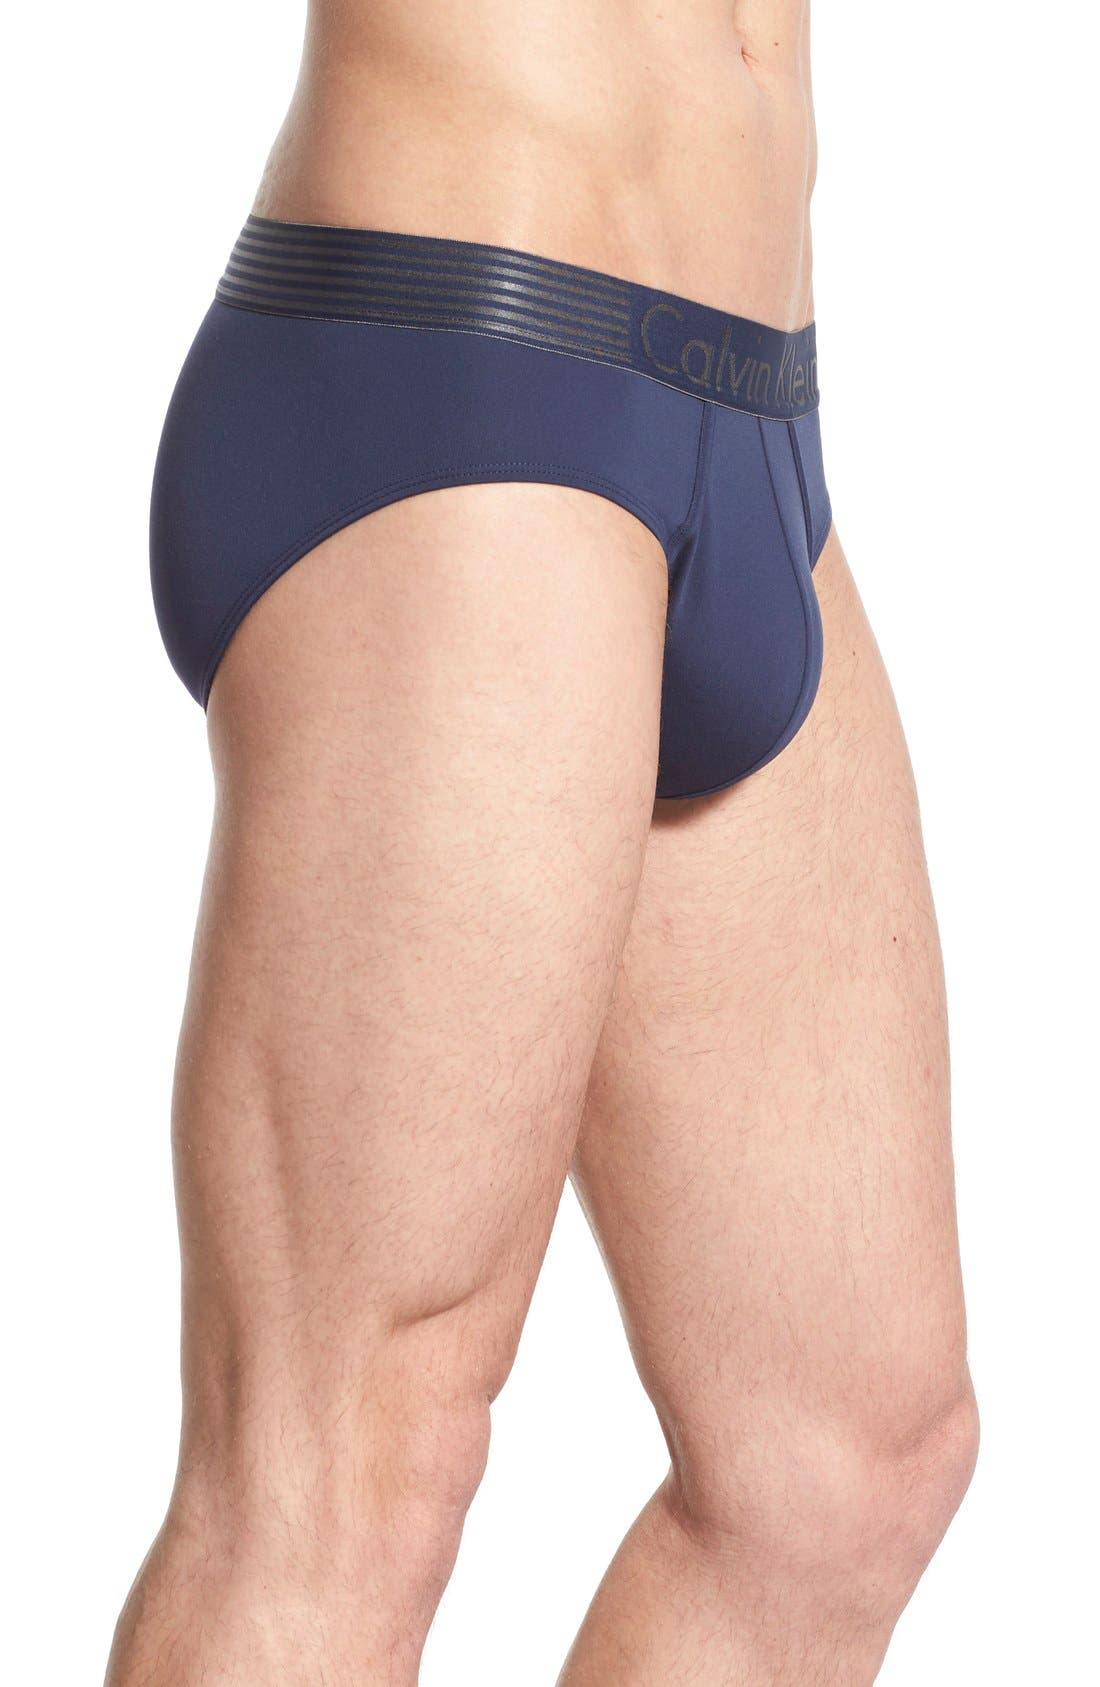 Alternate Image 3  - Calvin Klein Iron Strength Briefs